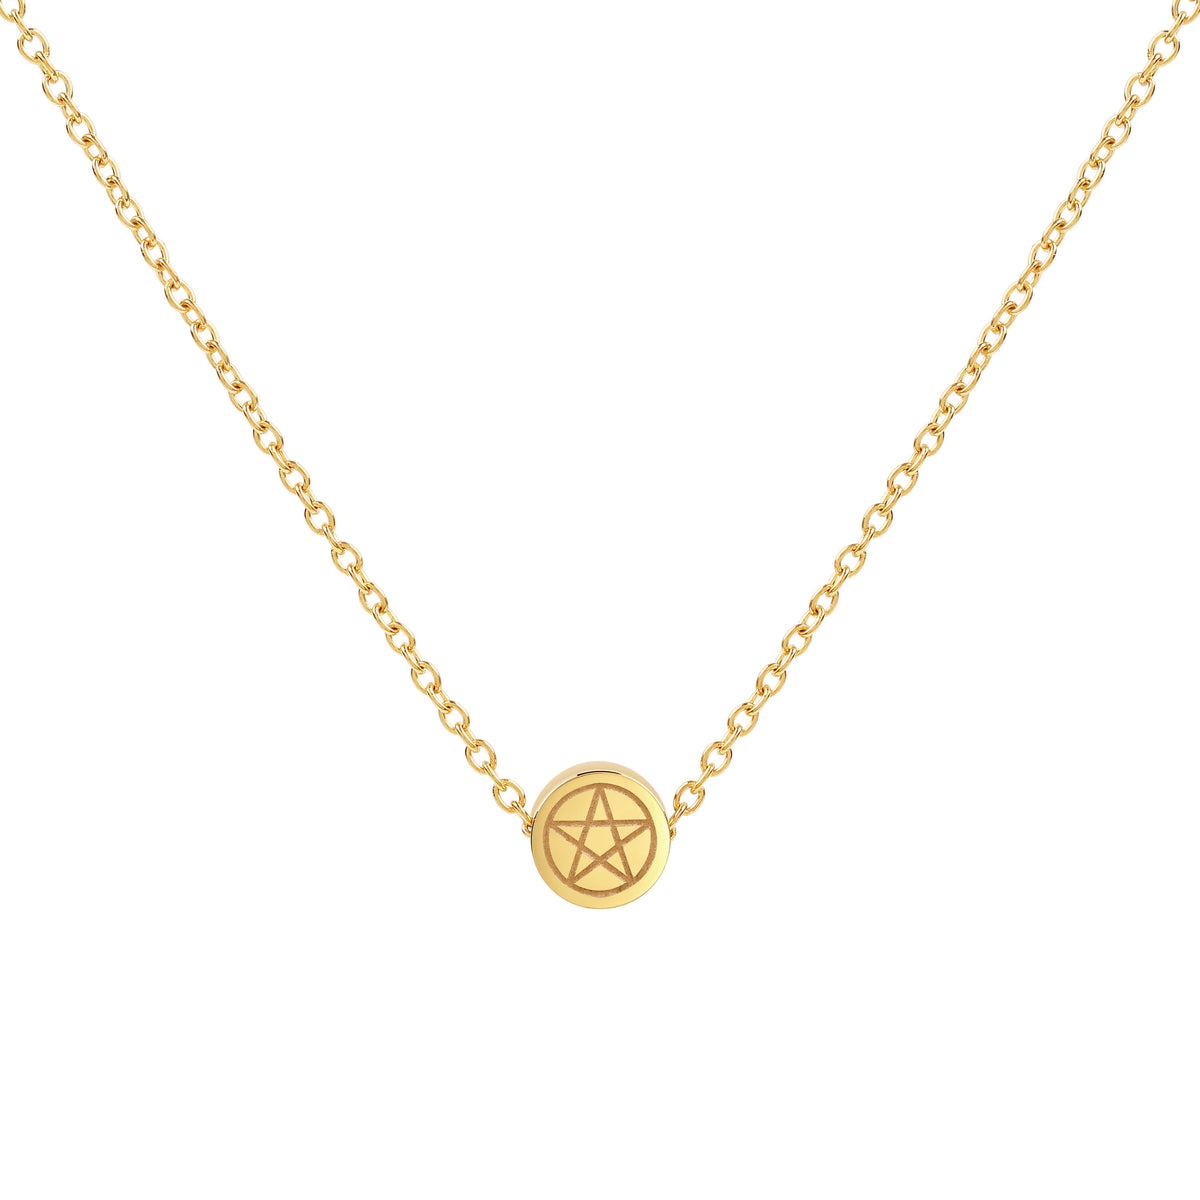 Pentacle Mini Pendant Necklace